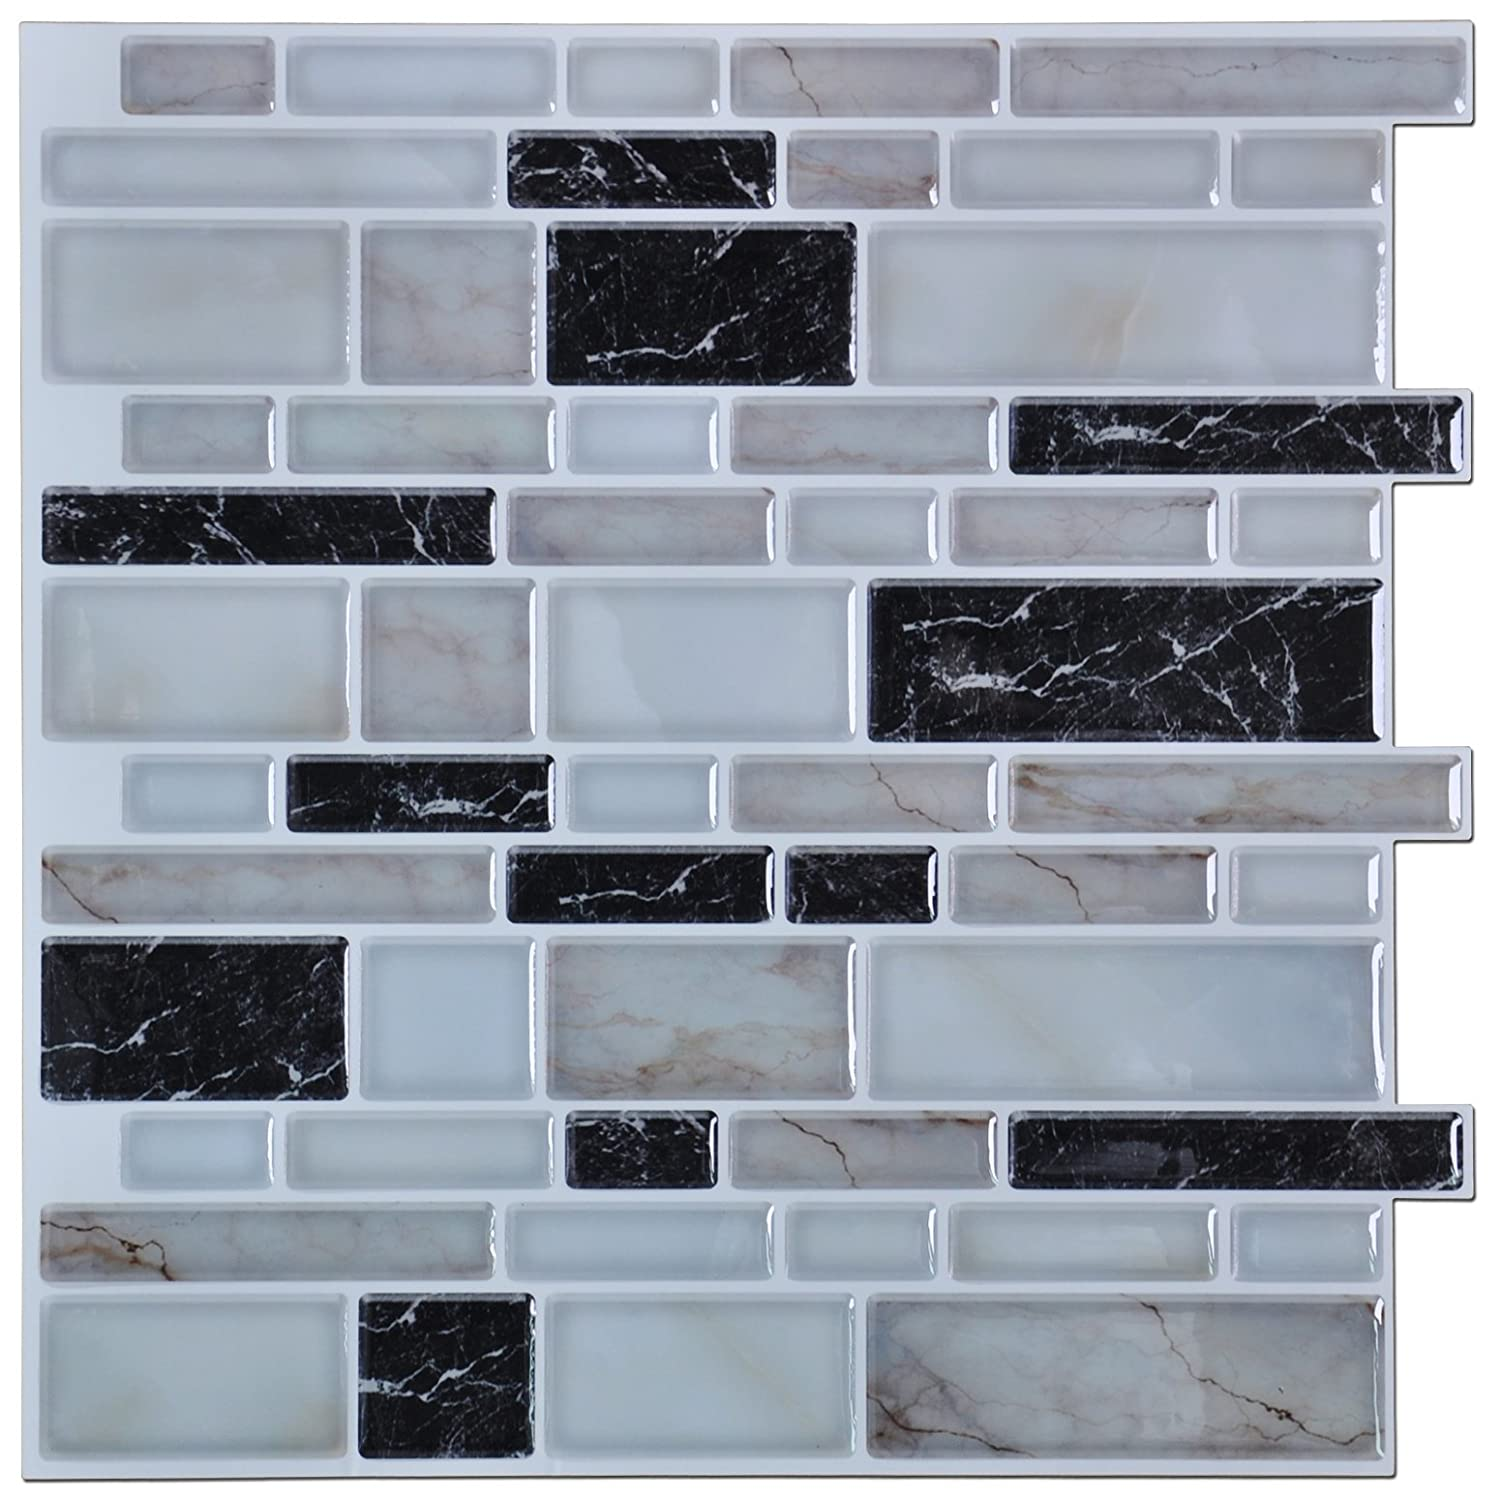 Peel And Stick Backsplash Tiles: Art3d Peel And Stick Kitchen Or Bathroom Backsplash Tile